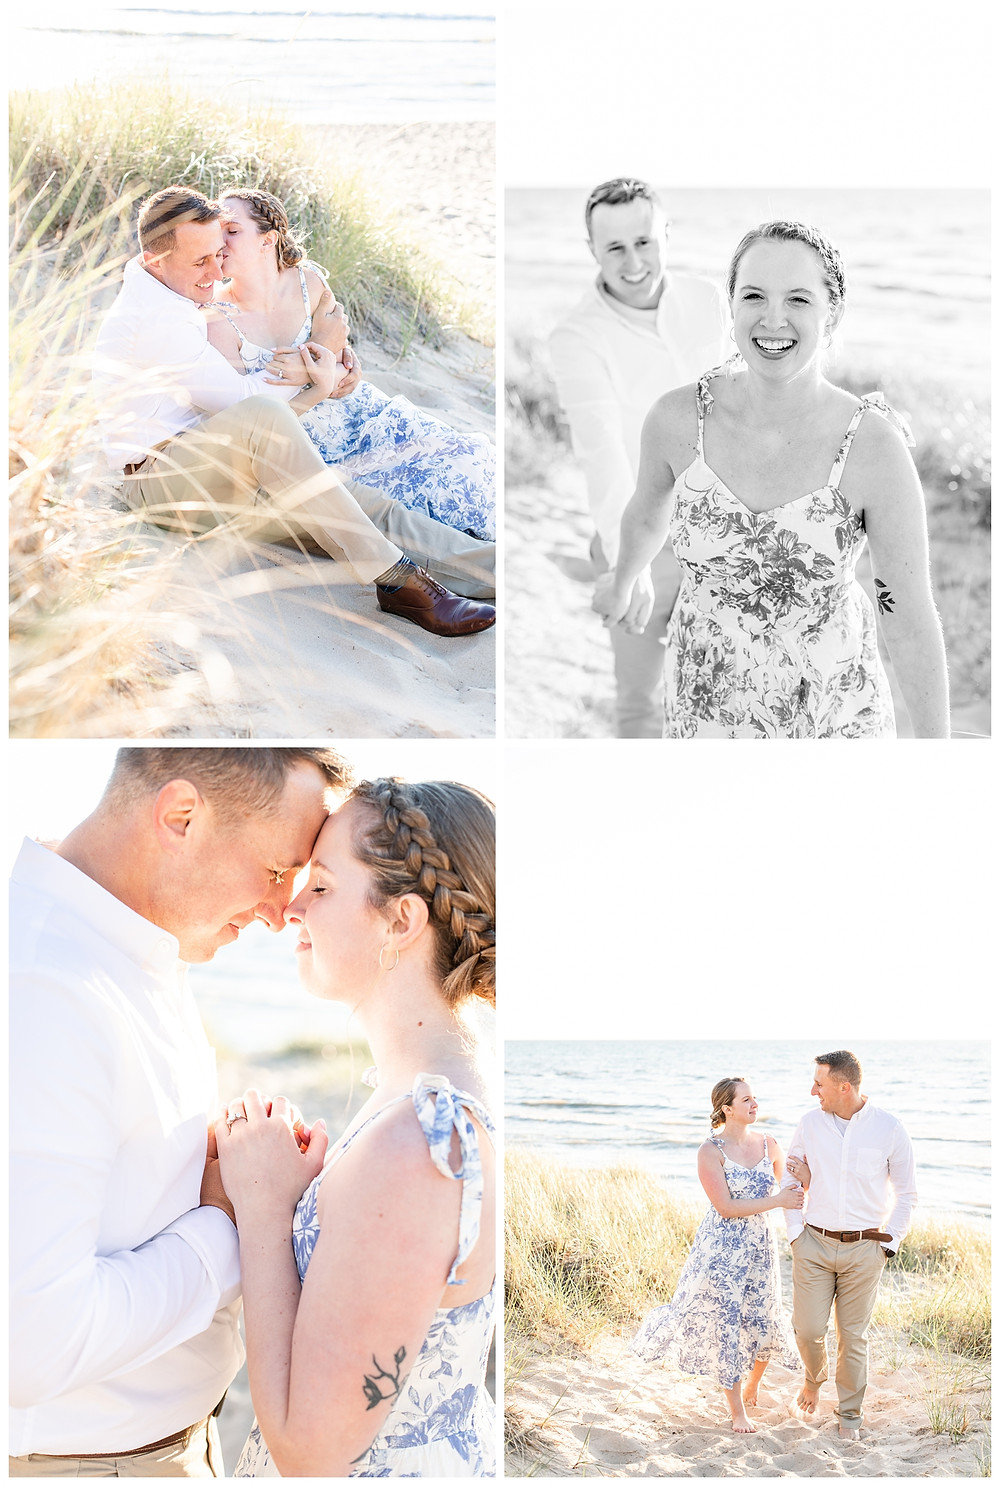 Josh and Andrea wedding photography husband and wife photographer team michigan pictures south haven engagement pictures session beach photo shoot fiance sitting walking